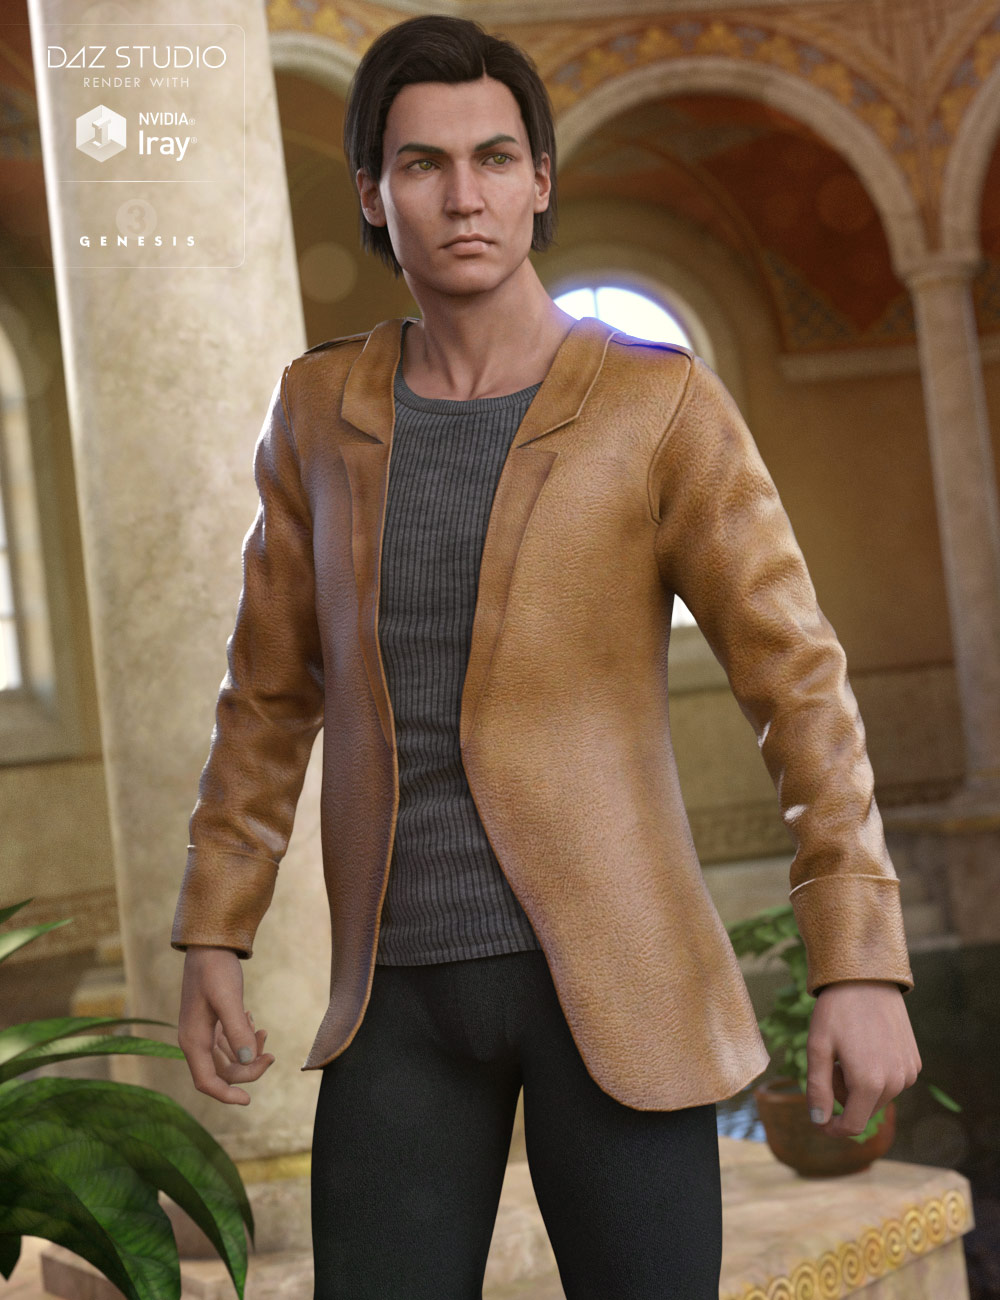 Leather Style Outfit for Genesis 3 Male(s) by: 4blueyes, 3D Models by Daz 3D